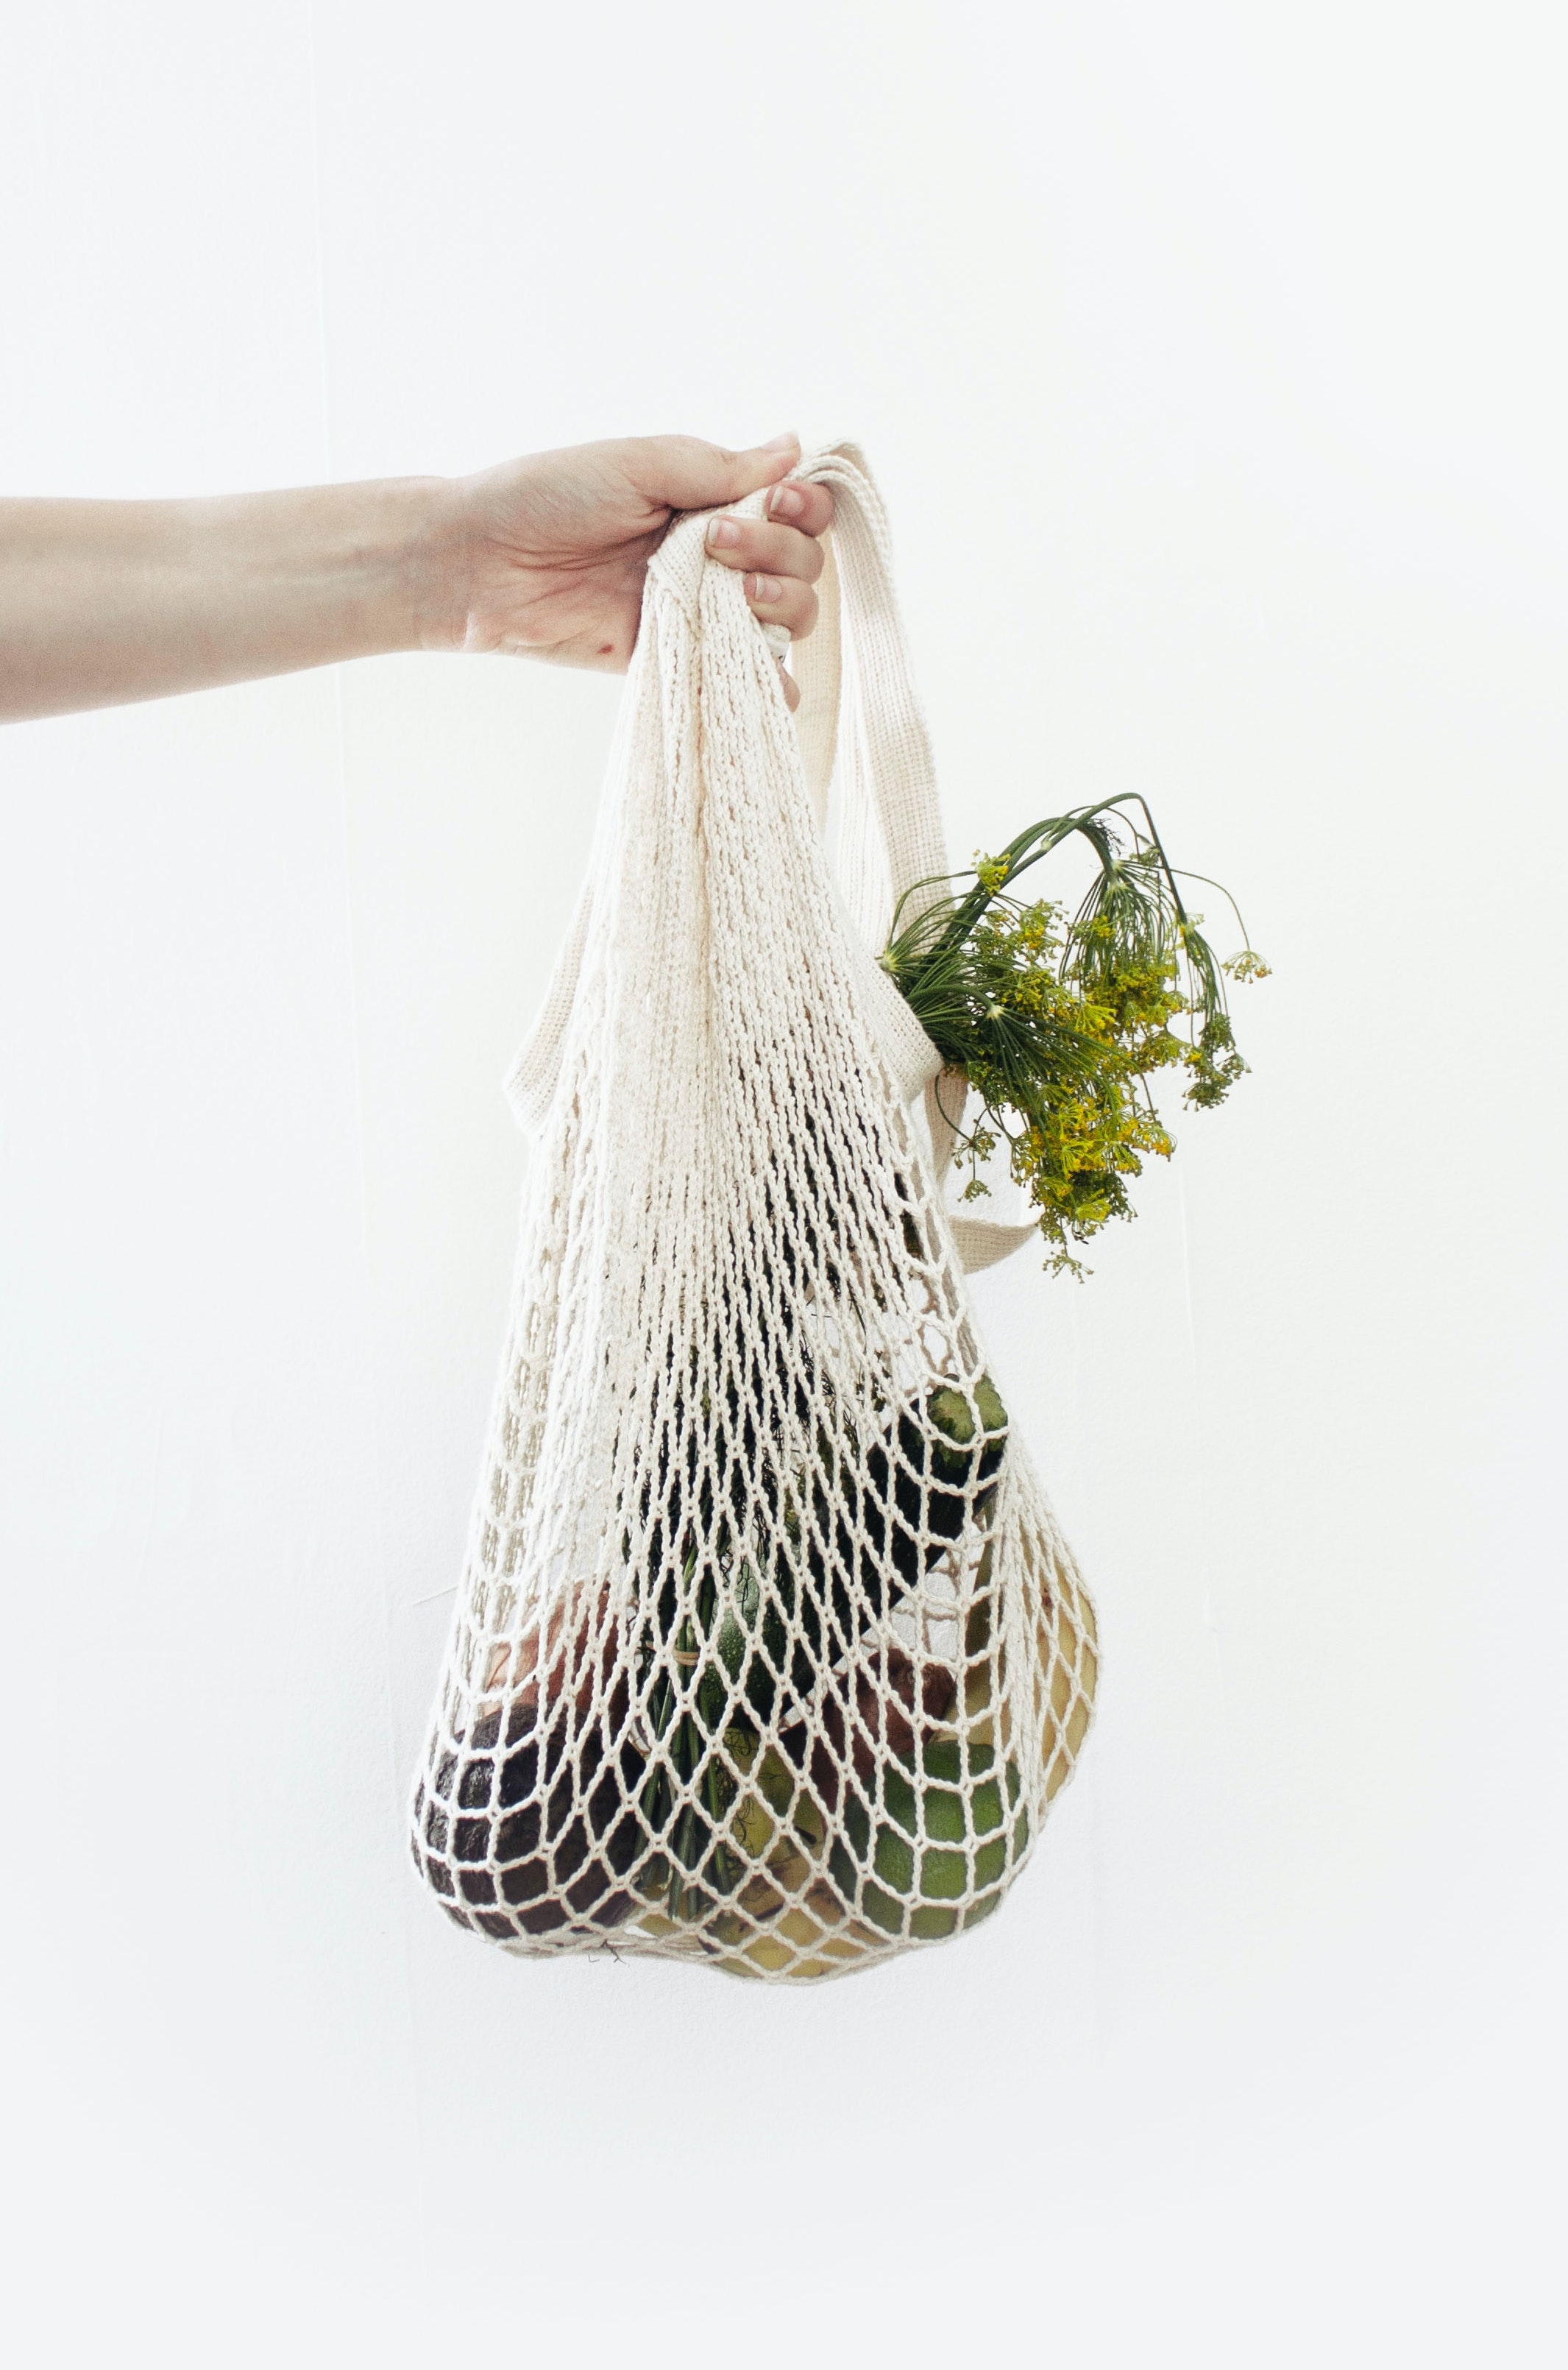 Top 8 Ways to Reduce Your Waste